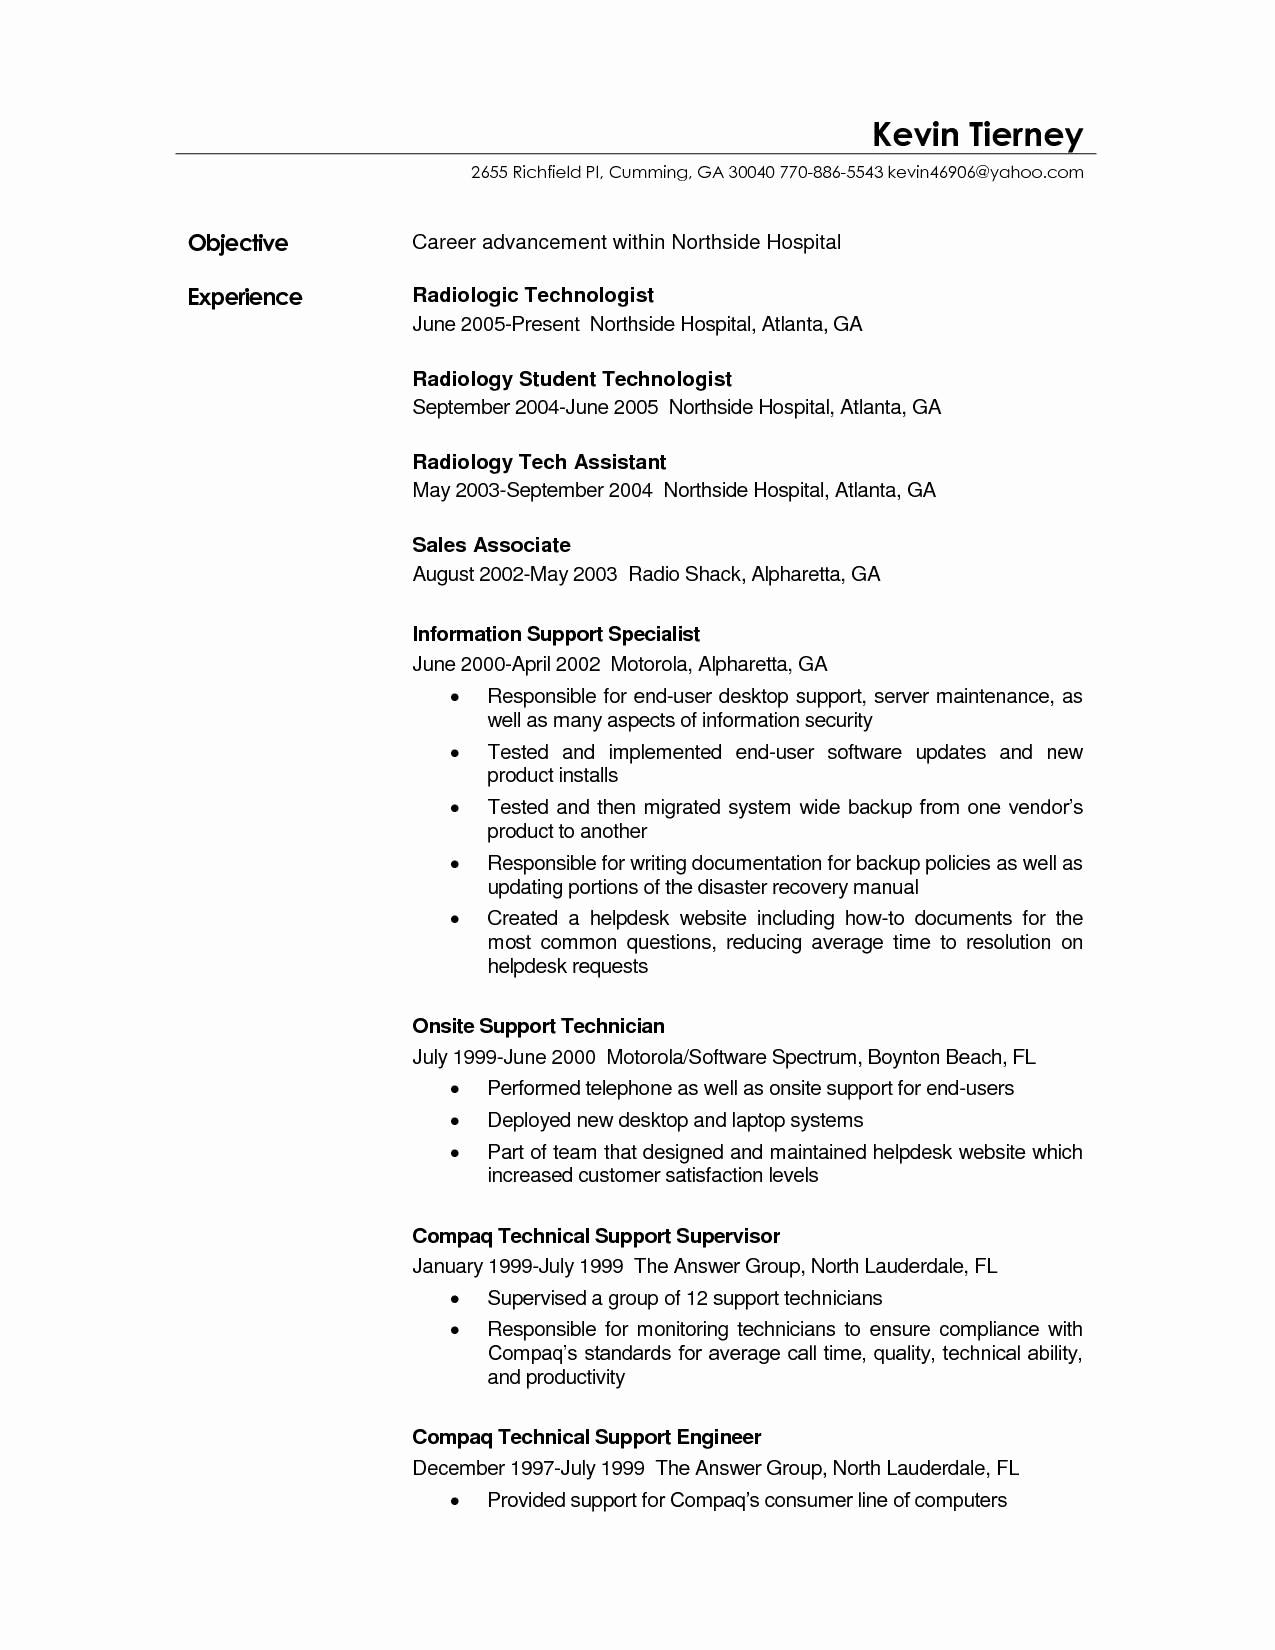 surgical technologist resume template Collection-37 Fresh Surgical Tech Resume Sample 20-e